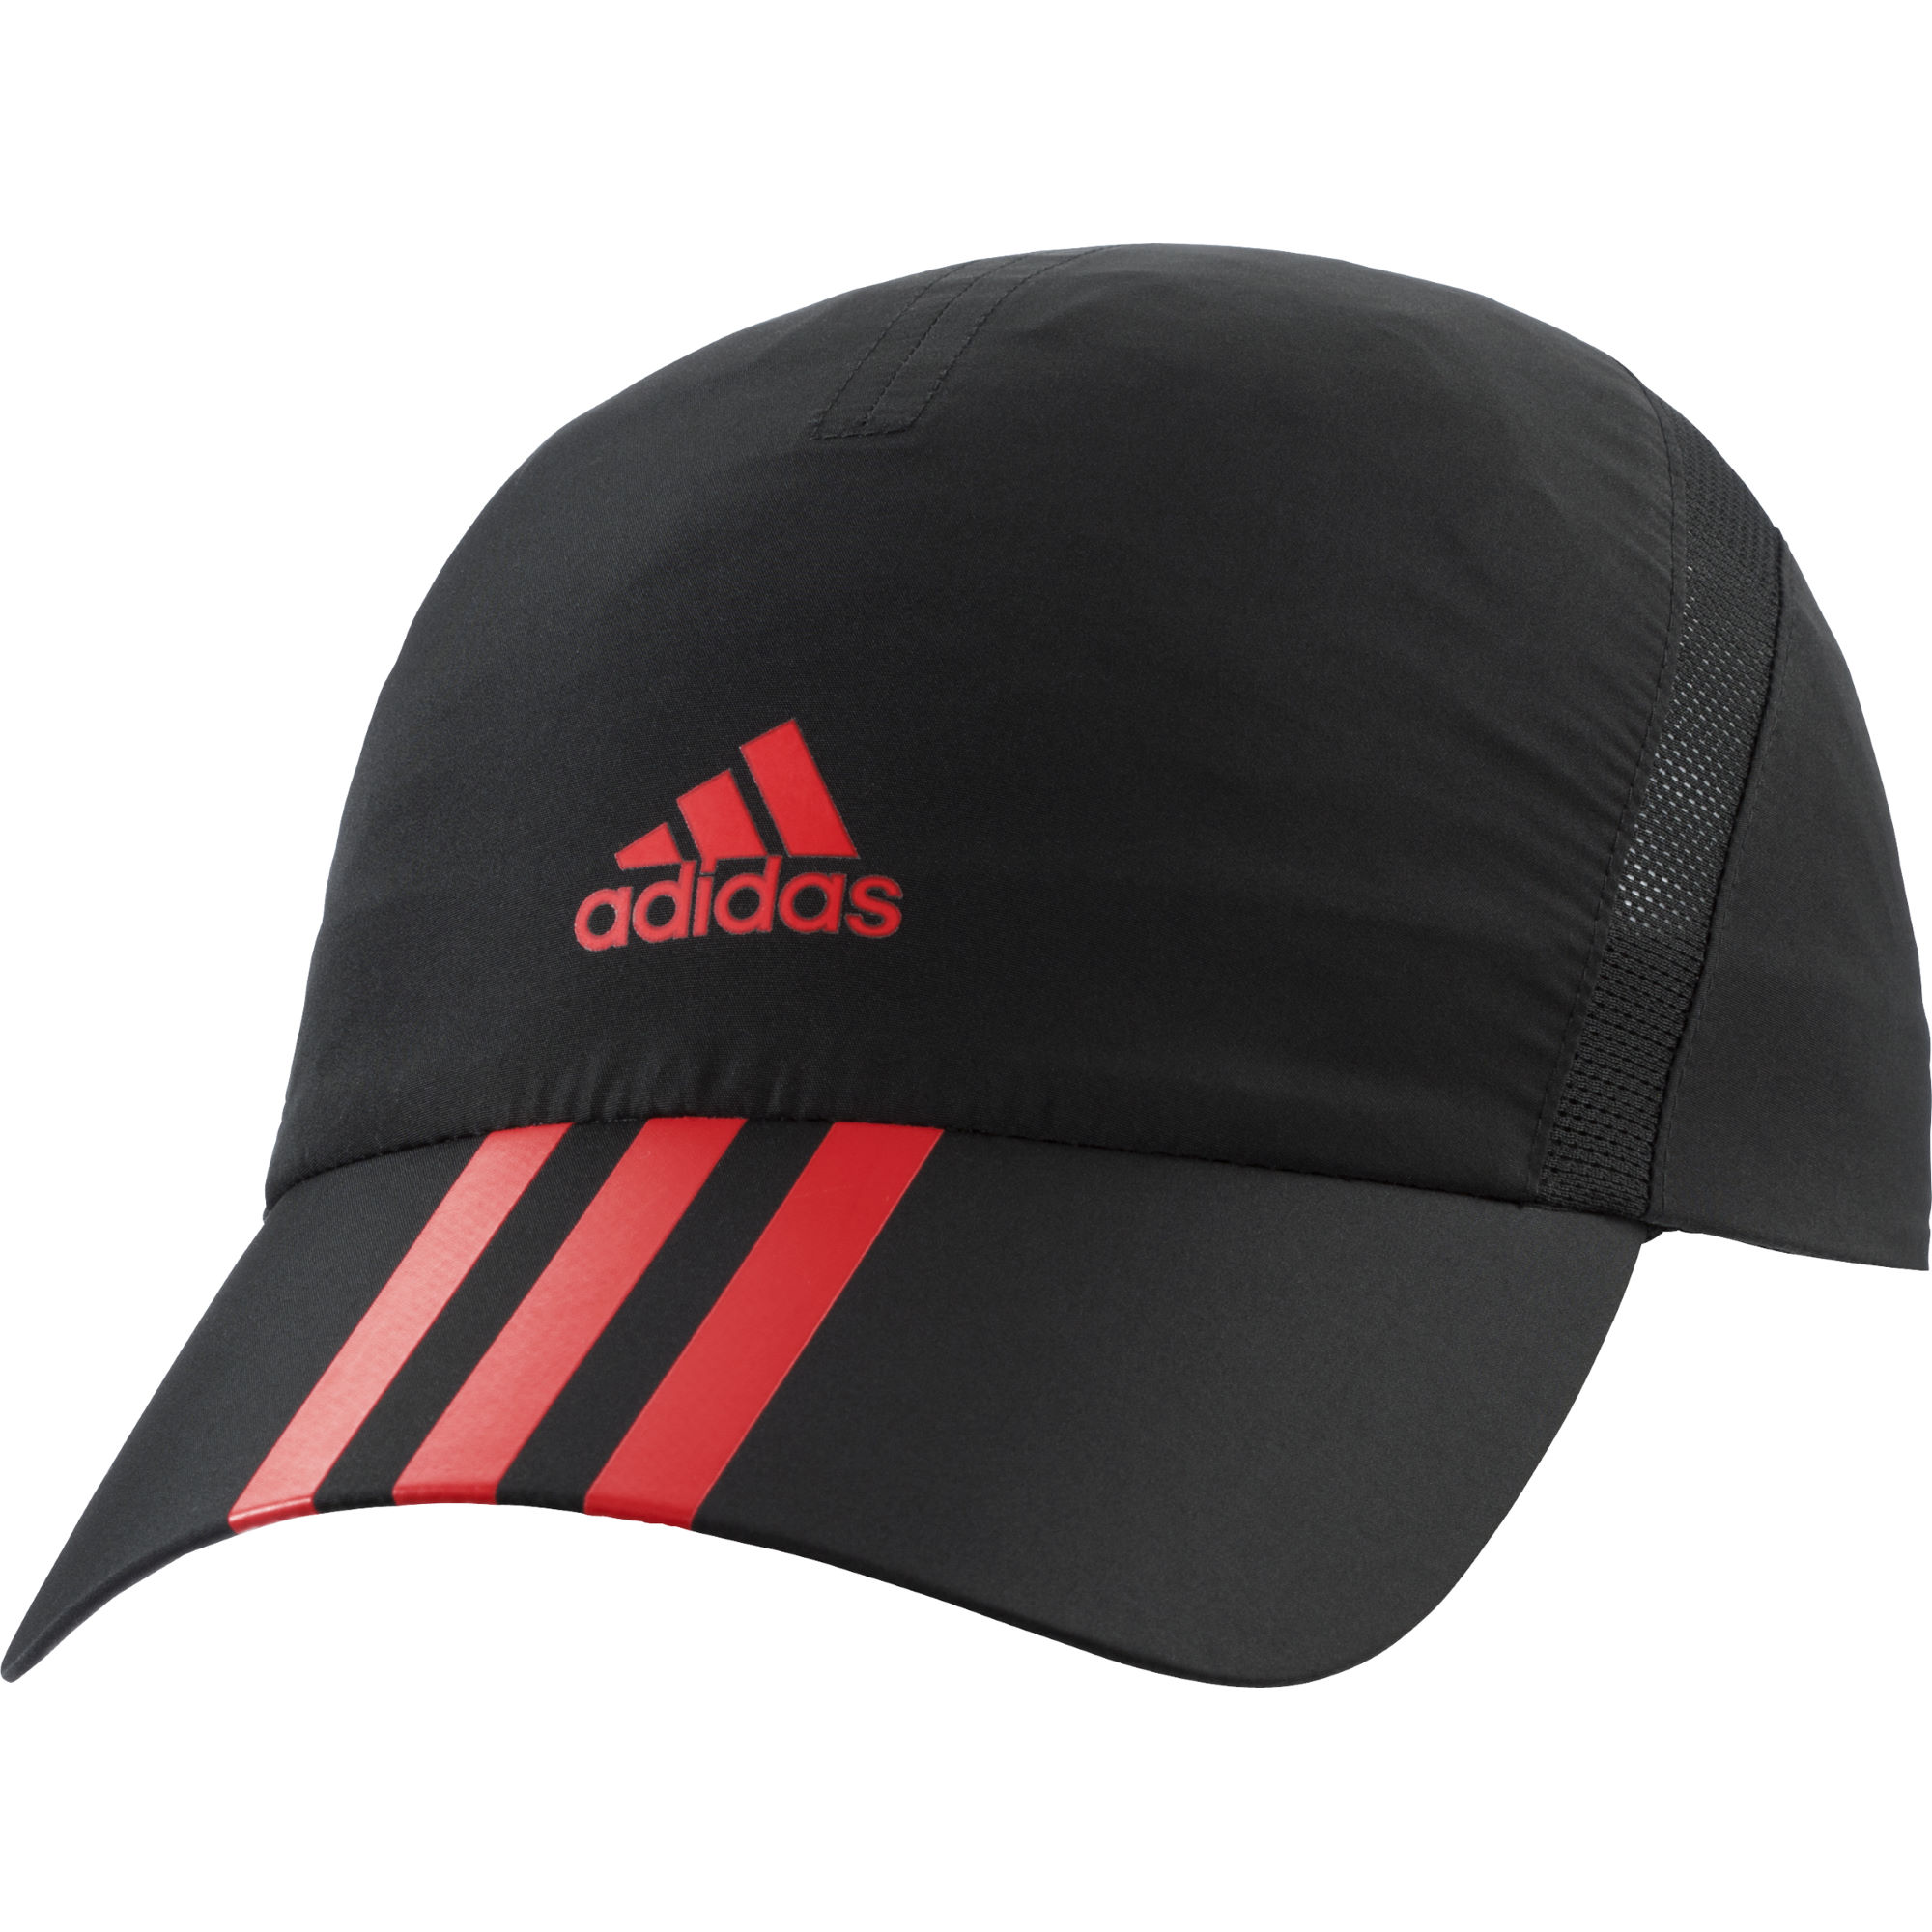 adidas cap picture custard. Black Bedroom Furniture Sets. Home Design Ideas